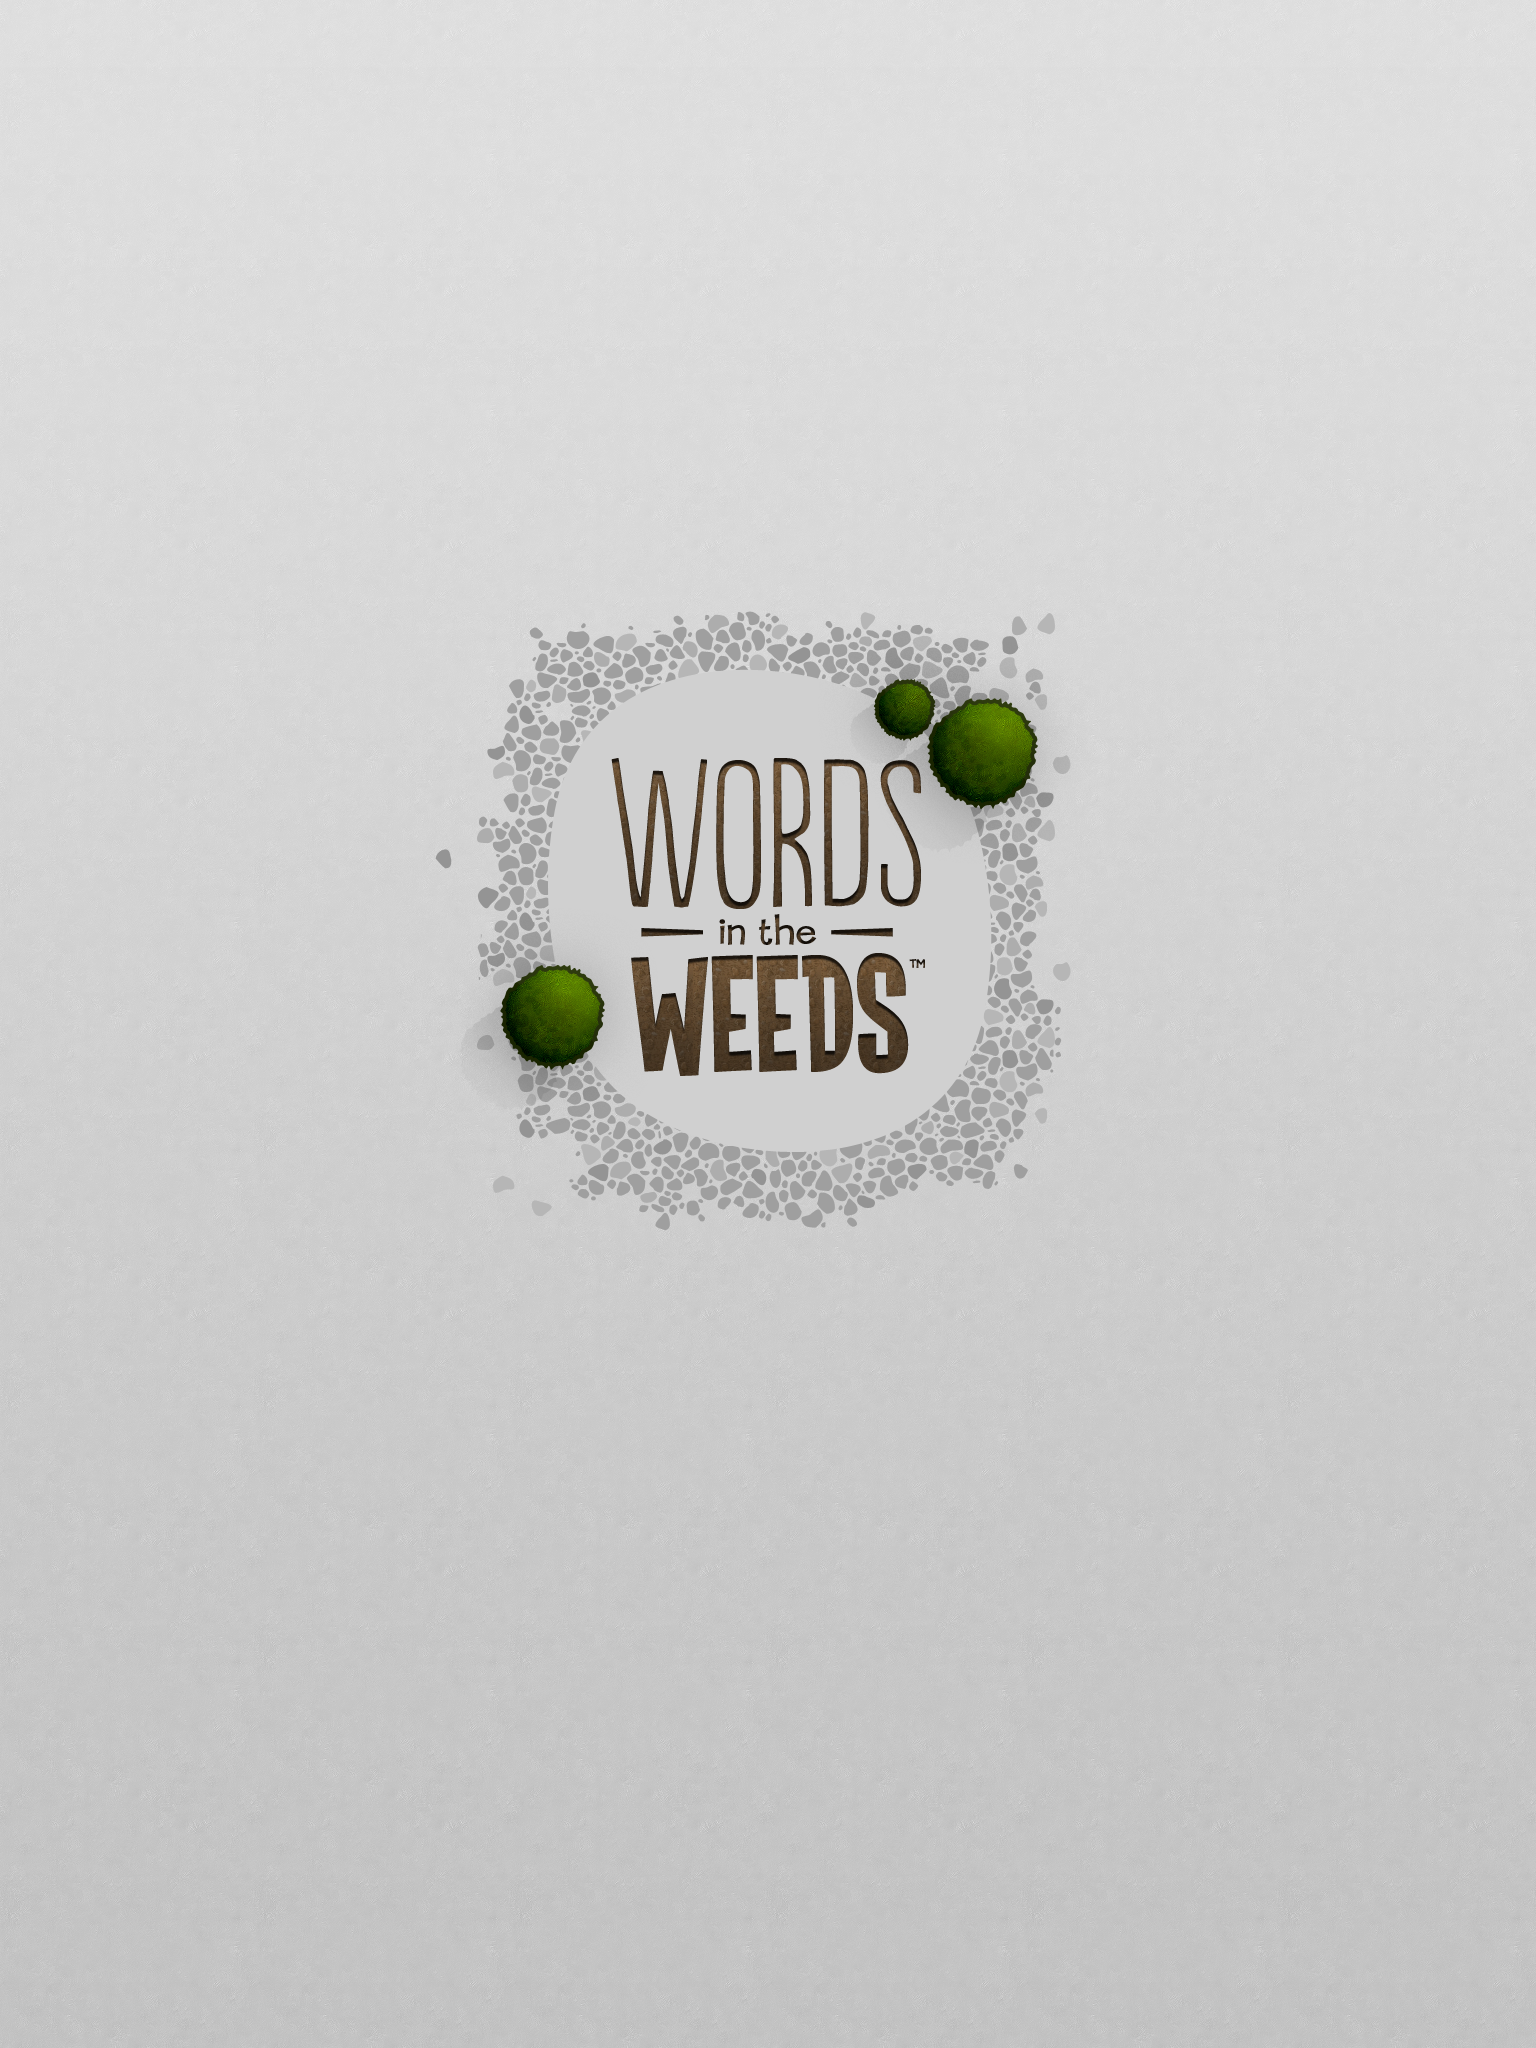 Words in the Weeds 01.png